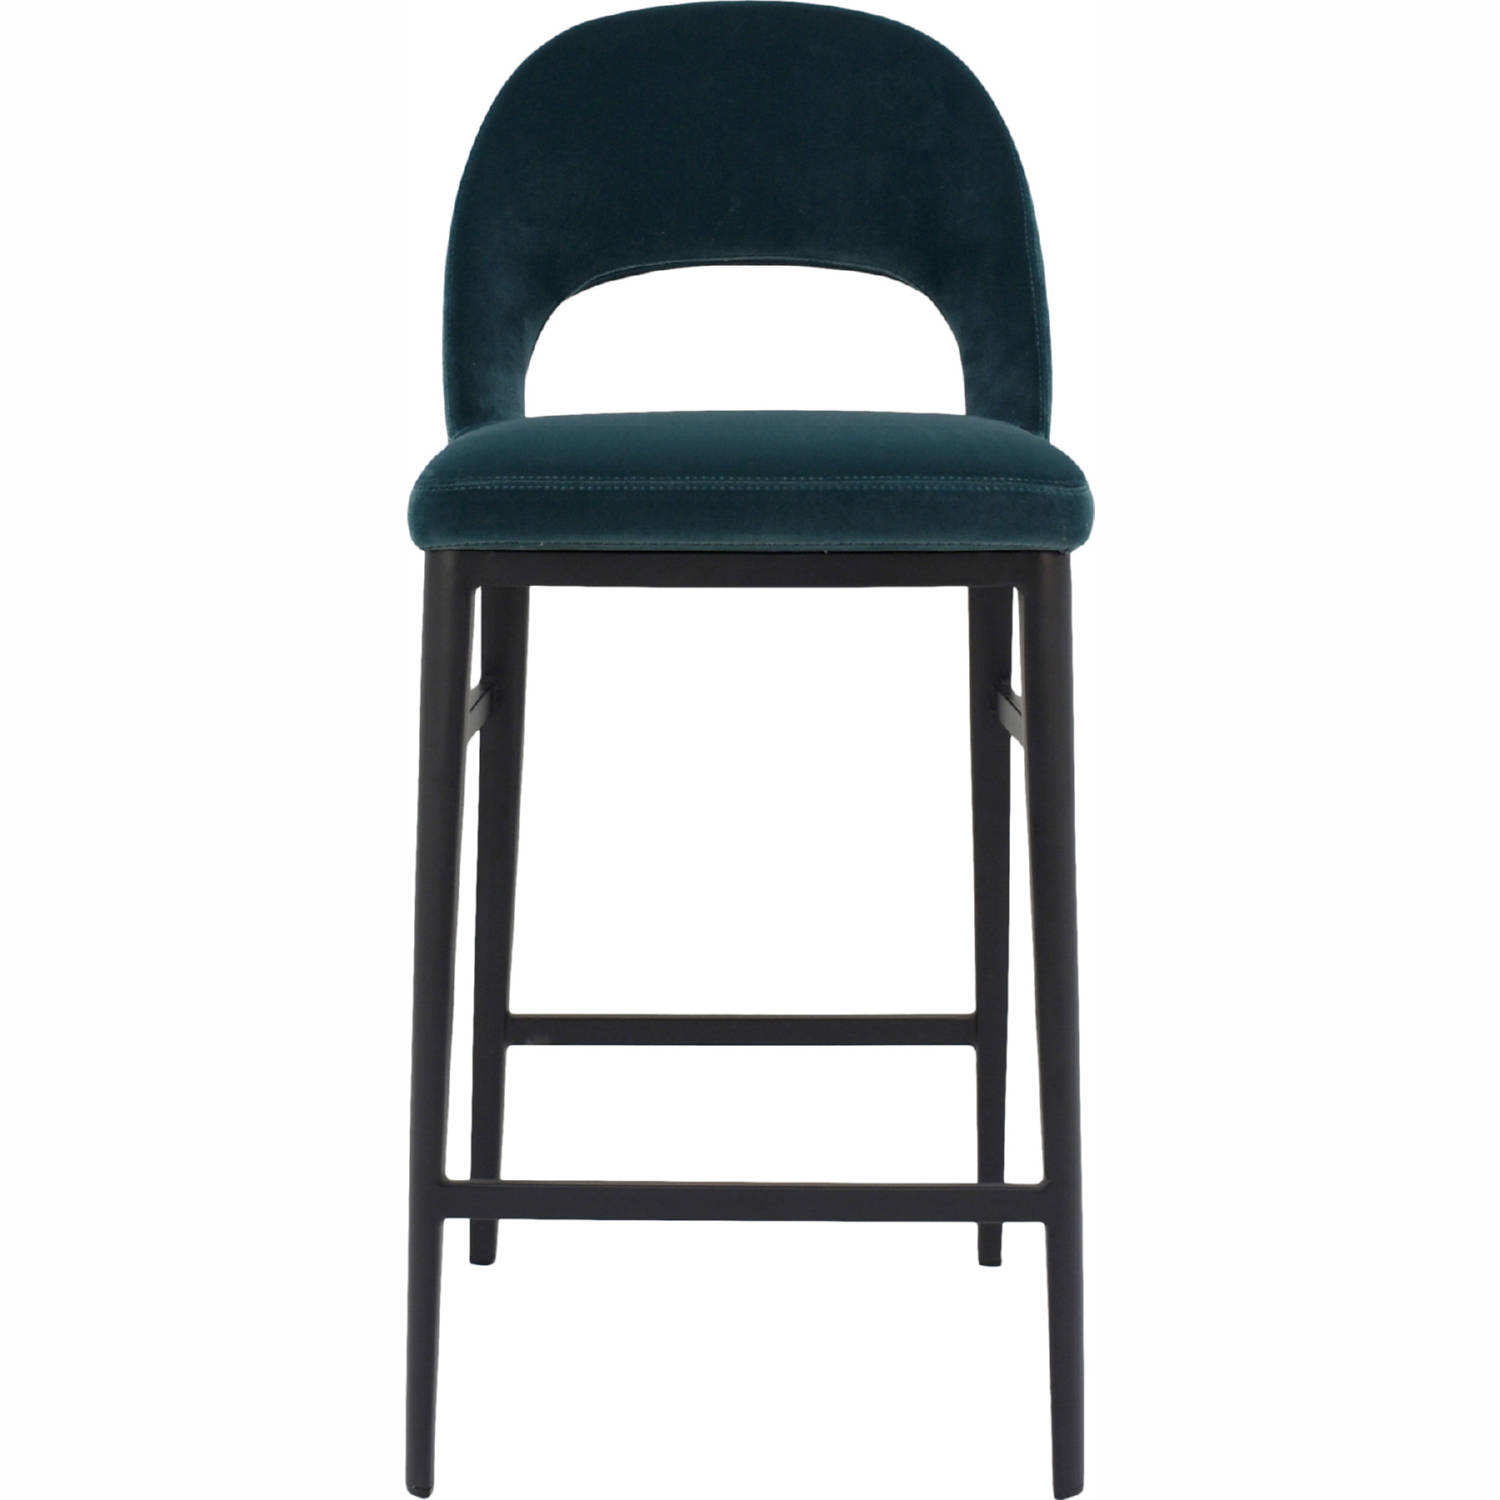 Swell Roger Counter Stool In Teal Velvet On Steel Legs By Moes Home Collection Machost Co Dining Chair Design Ideas Machostcouk